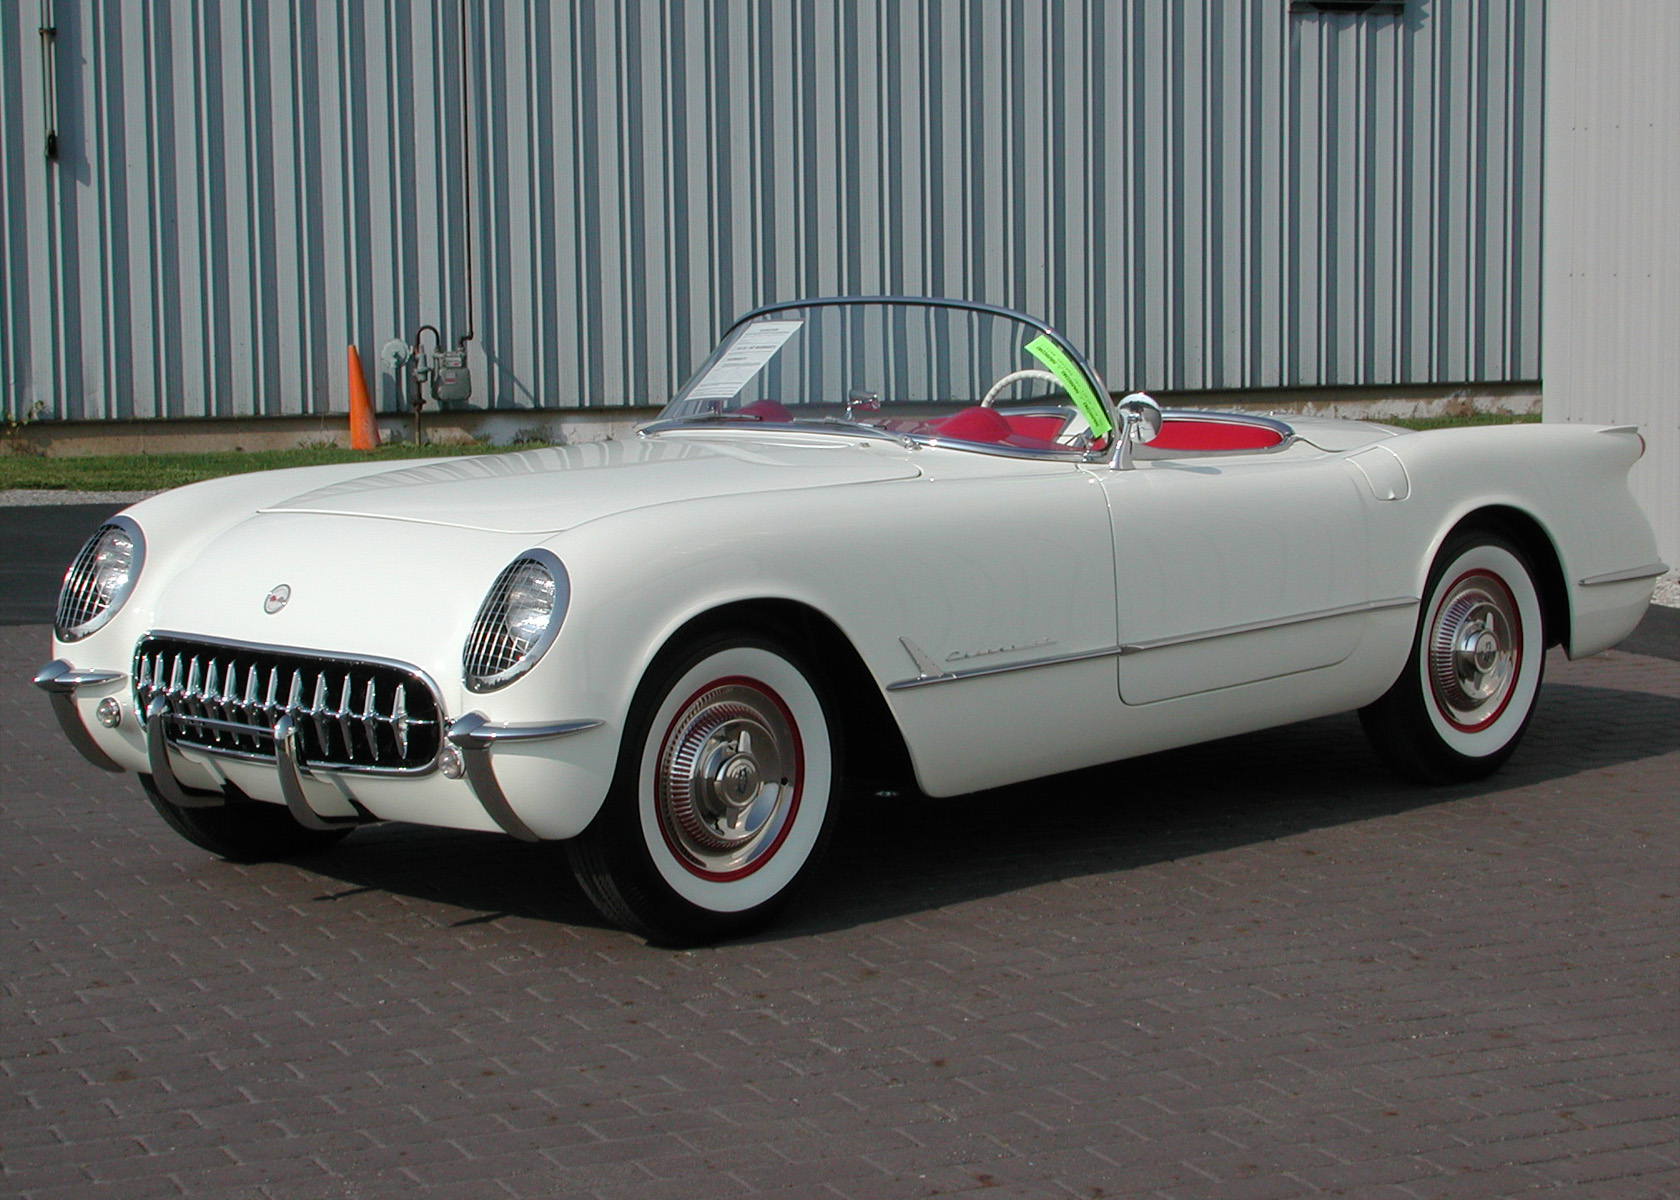 Corvette Restoration Celebration 1953 Full View Of Corvette